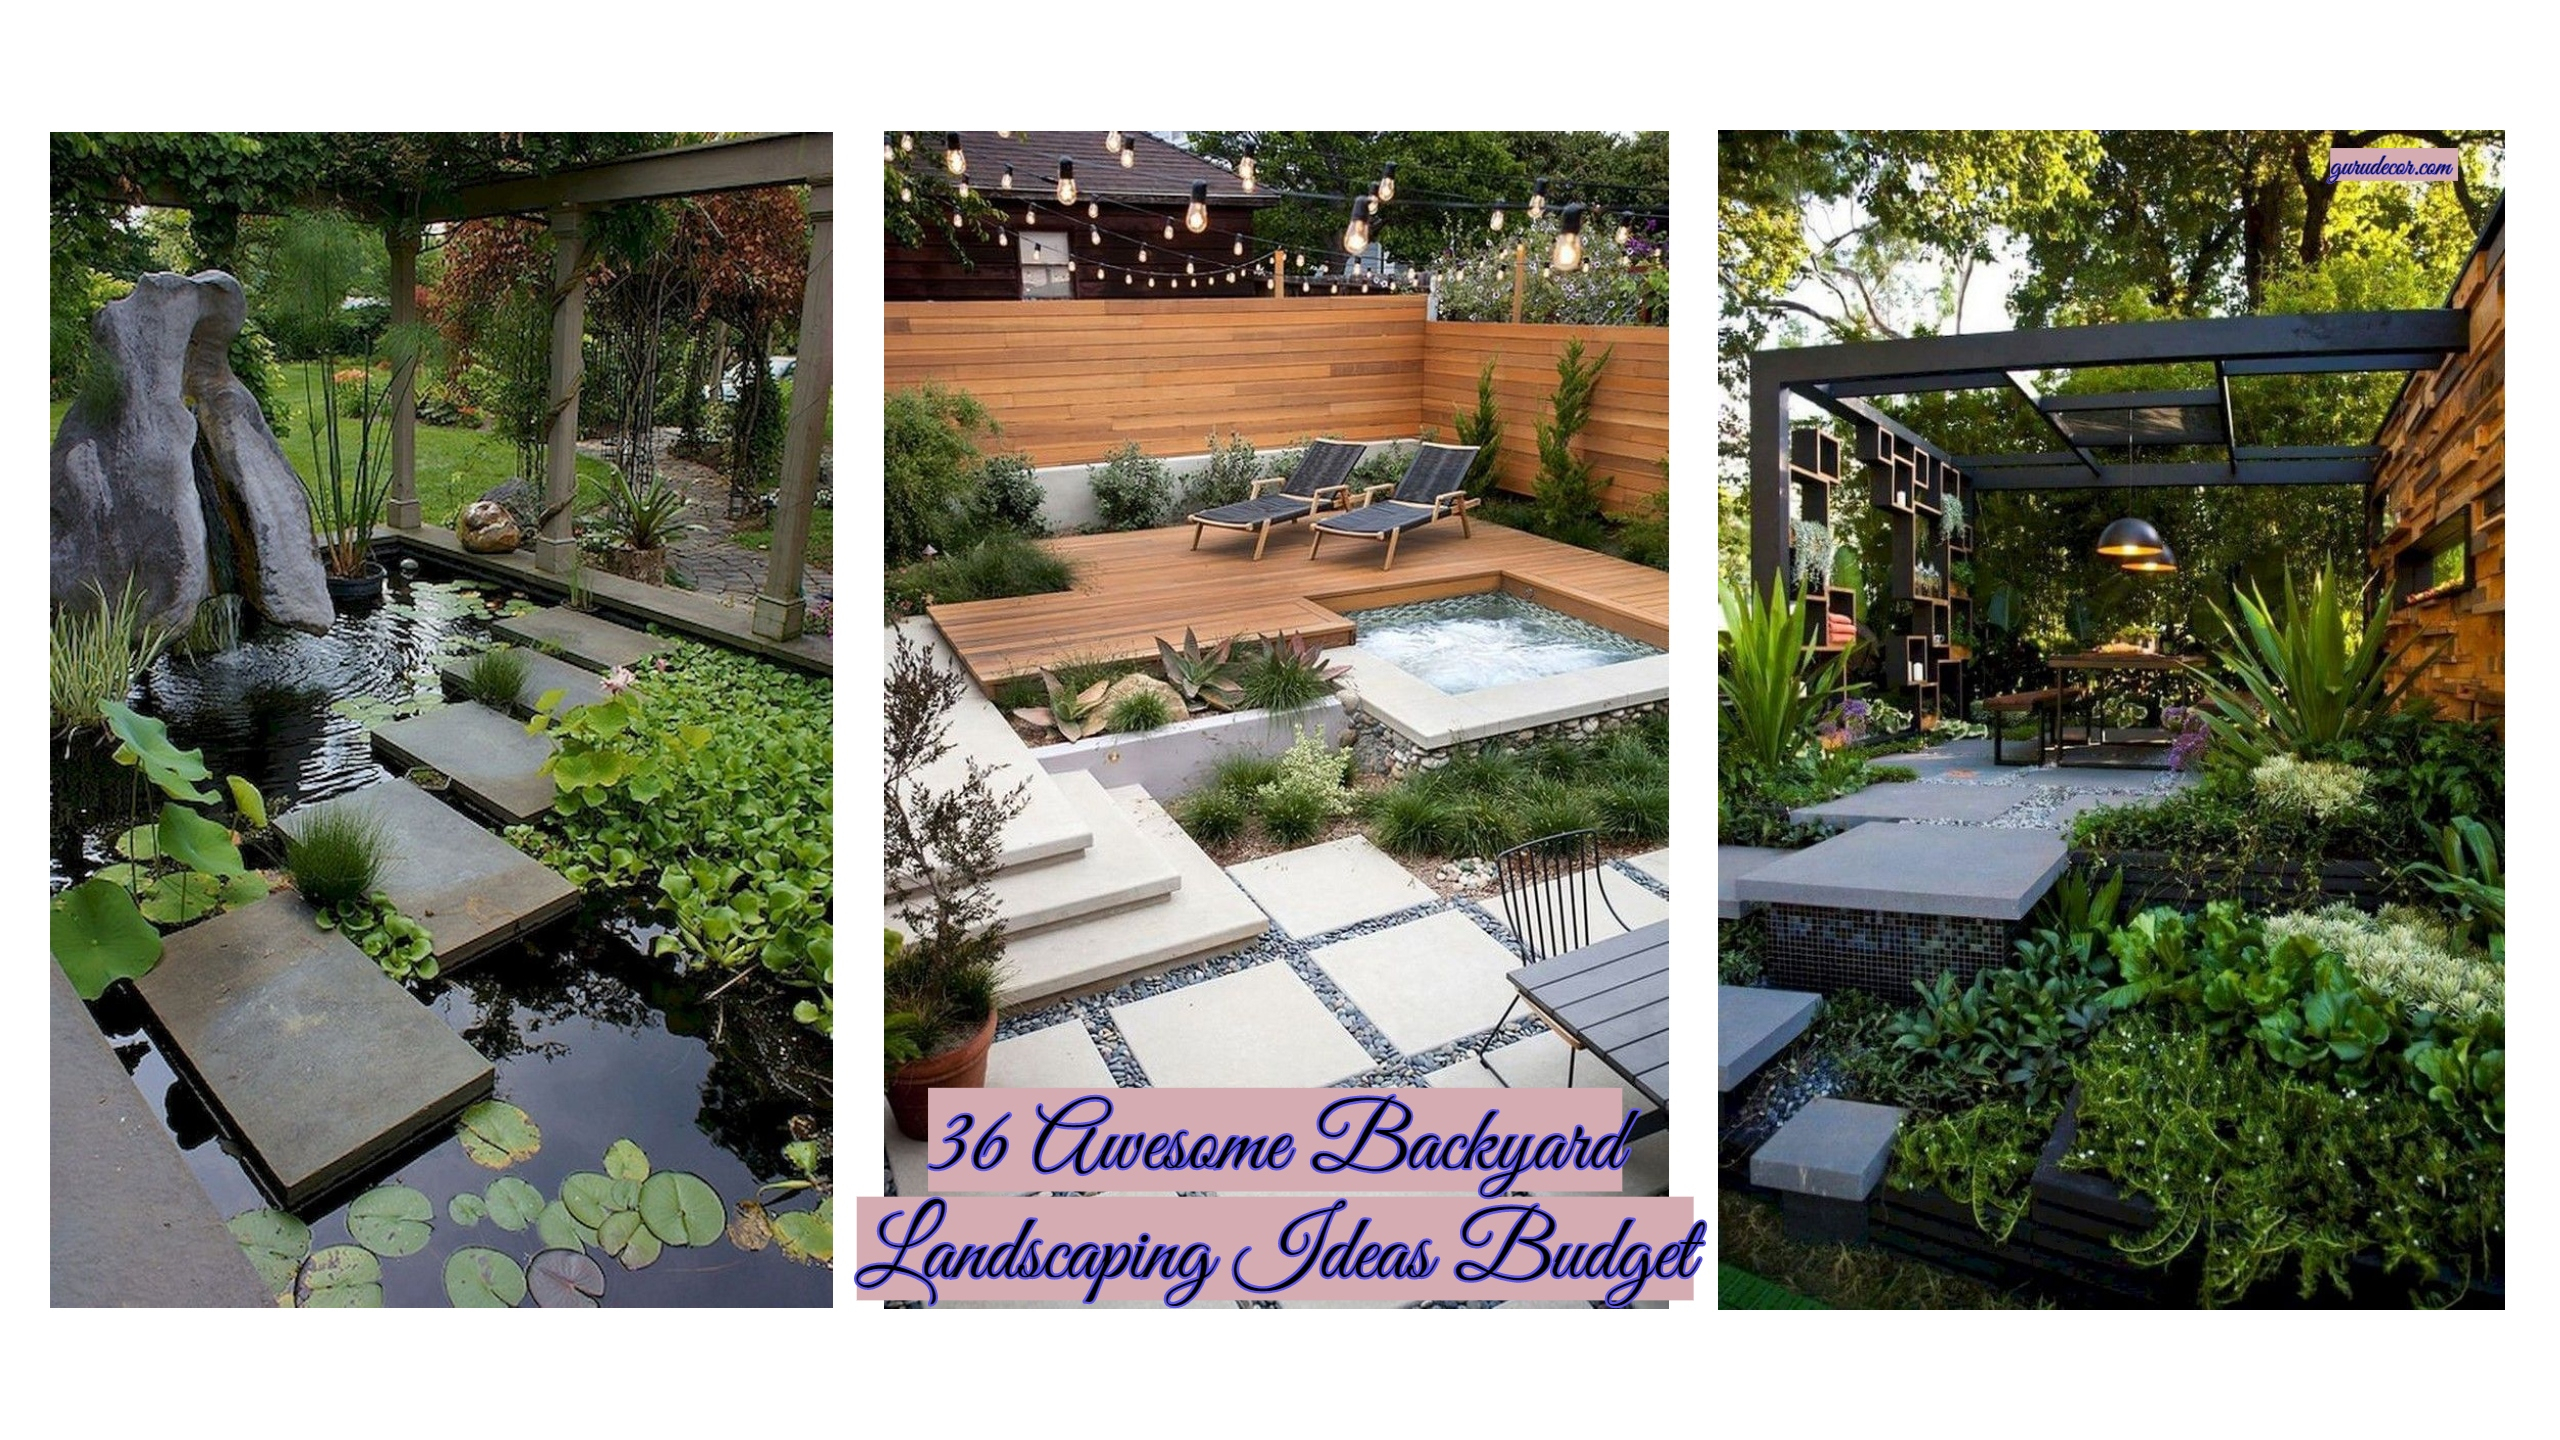 36 Awesome Backyard Landscaping Ideas Budget Gurudecor throughout 12 Smart Ideas How to Build Cool Backyard Landscaping Ideas